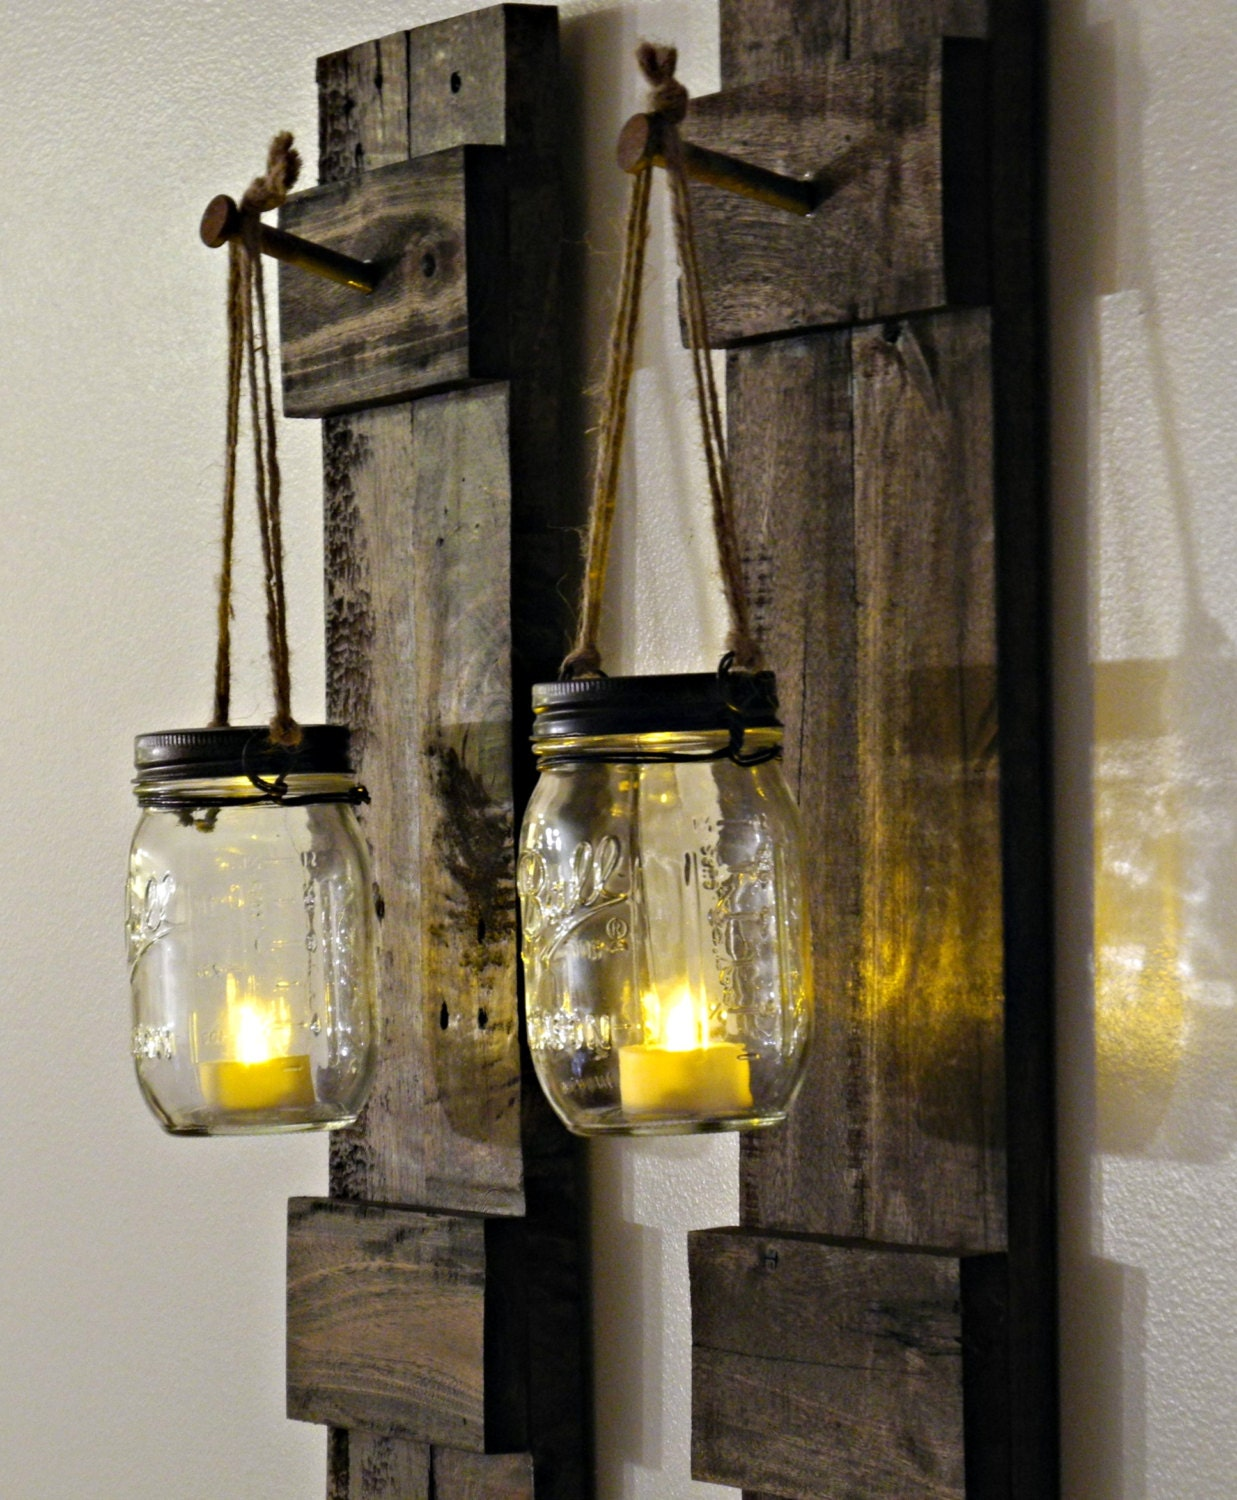 Wall Sconces Rustic: Rustic Candle Holder Rustic Home Decor Sconce By